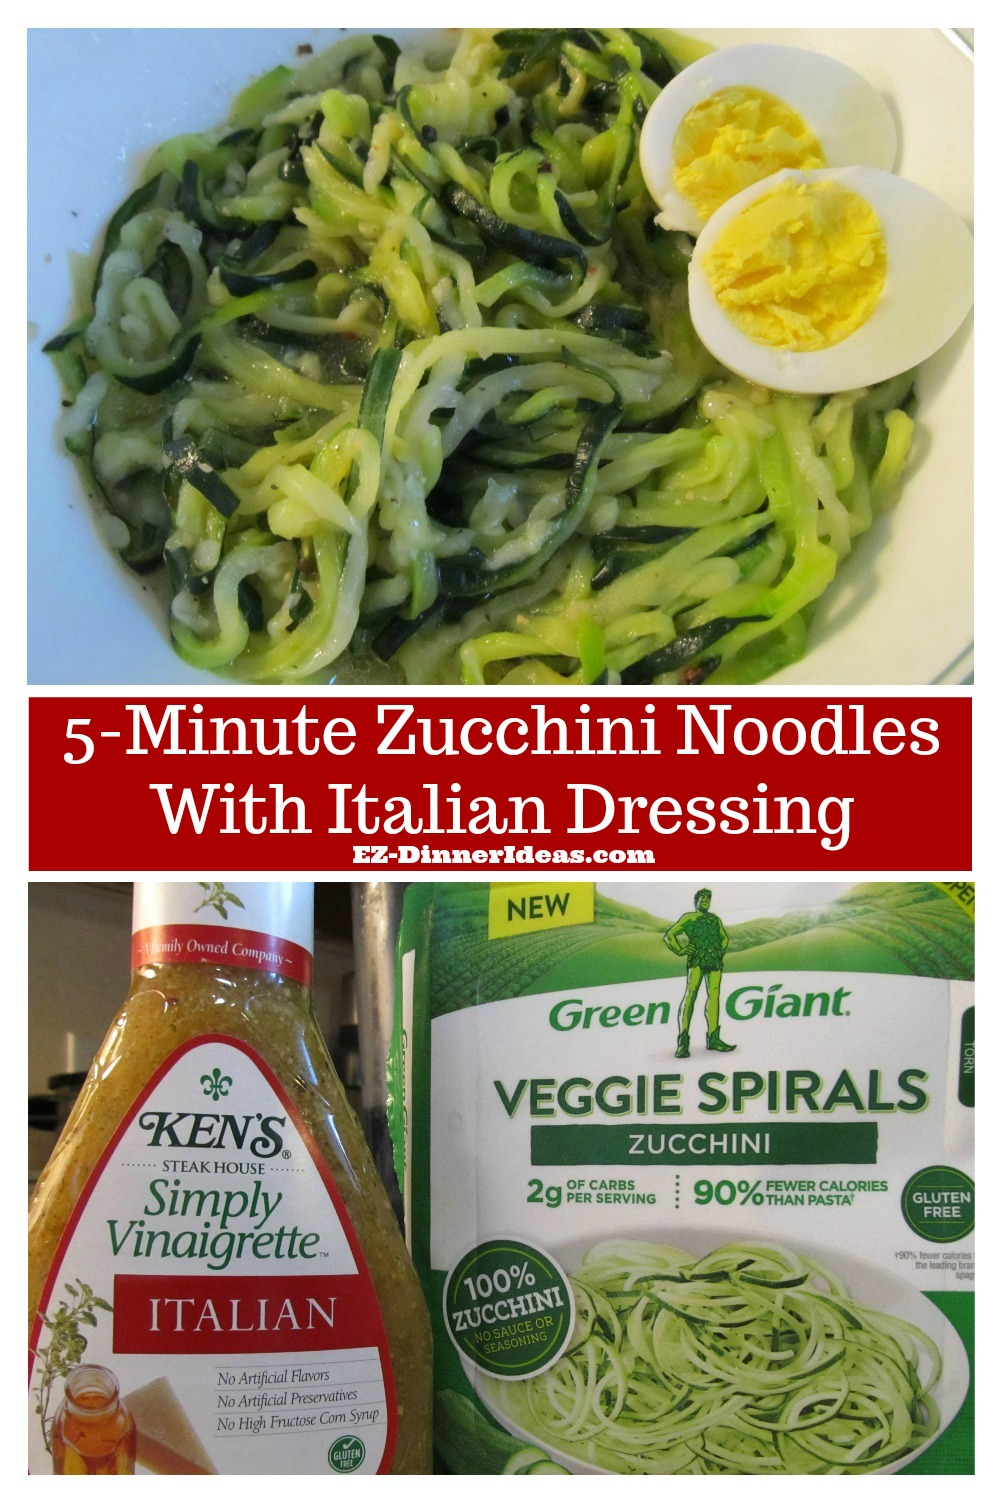 Cooking for two with 2 ingredients and make a healthy meal.  This 5-minute zucchini noodles with Italian dressing is a MUST try.